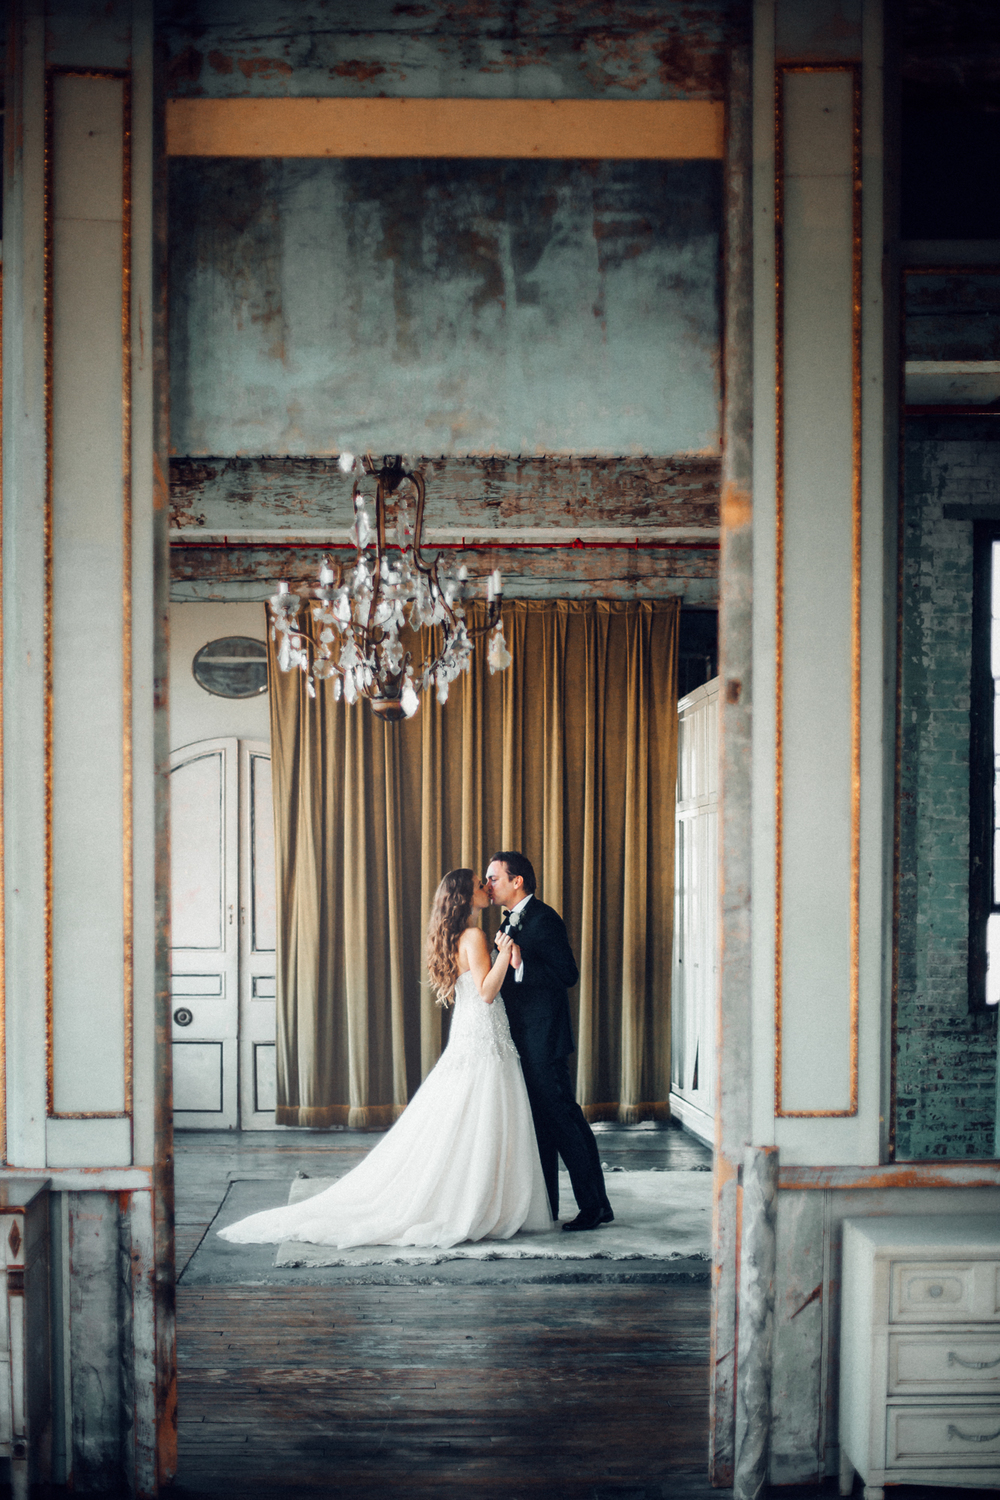 New York Wedding Photographer Boris Zaretsky Boris_Zaretsky_Photography__B2C4926-Edit copy.jpg